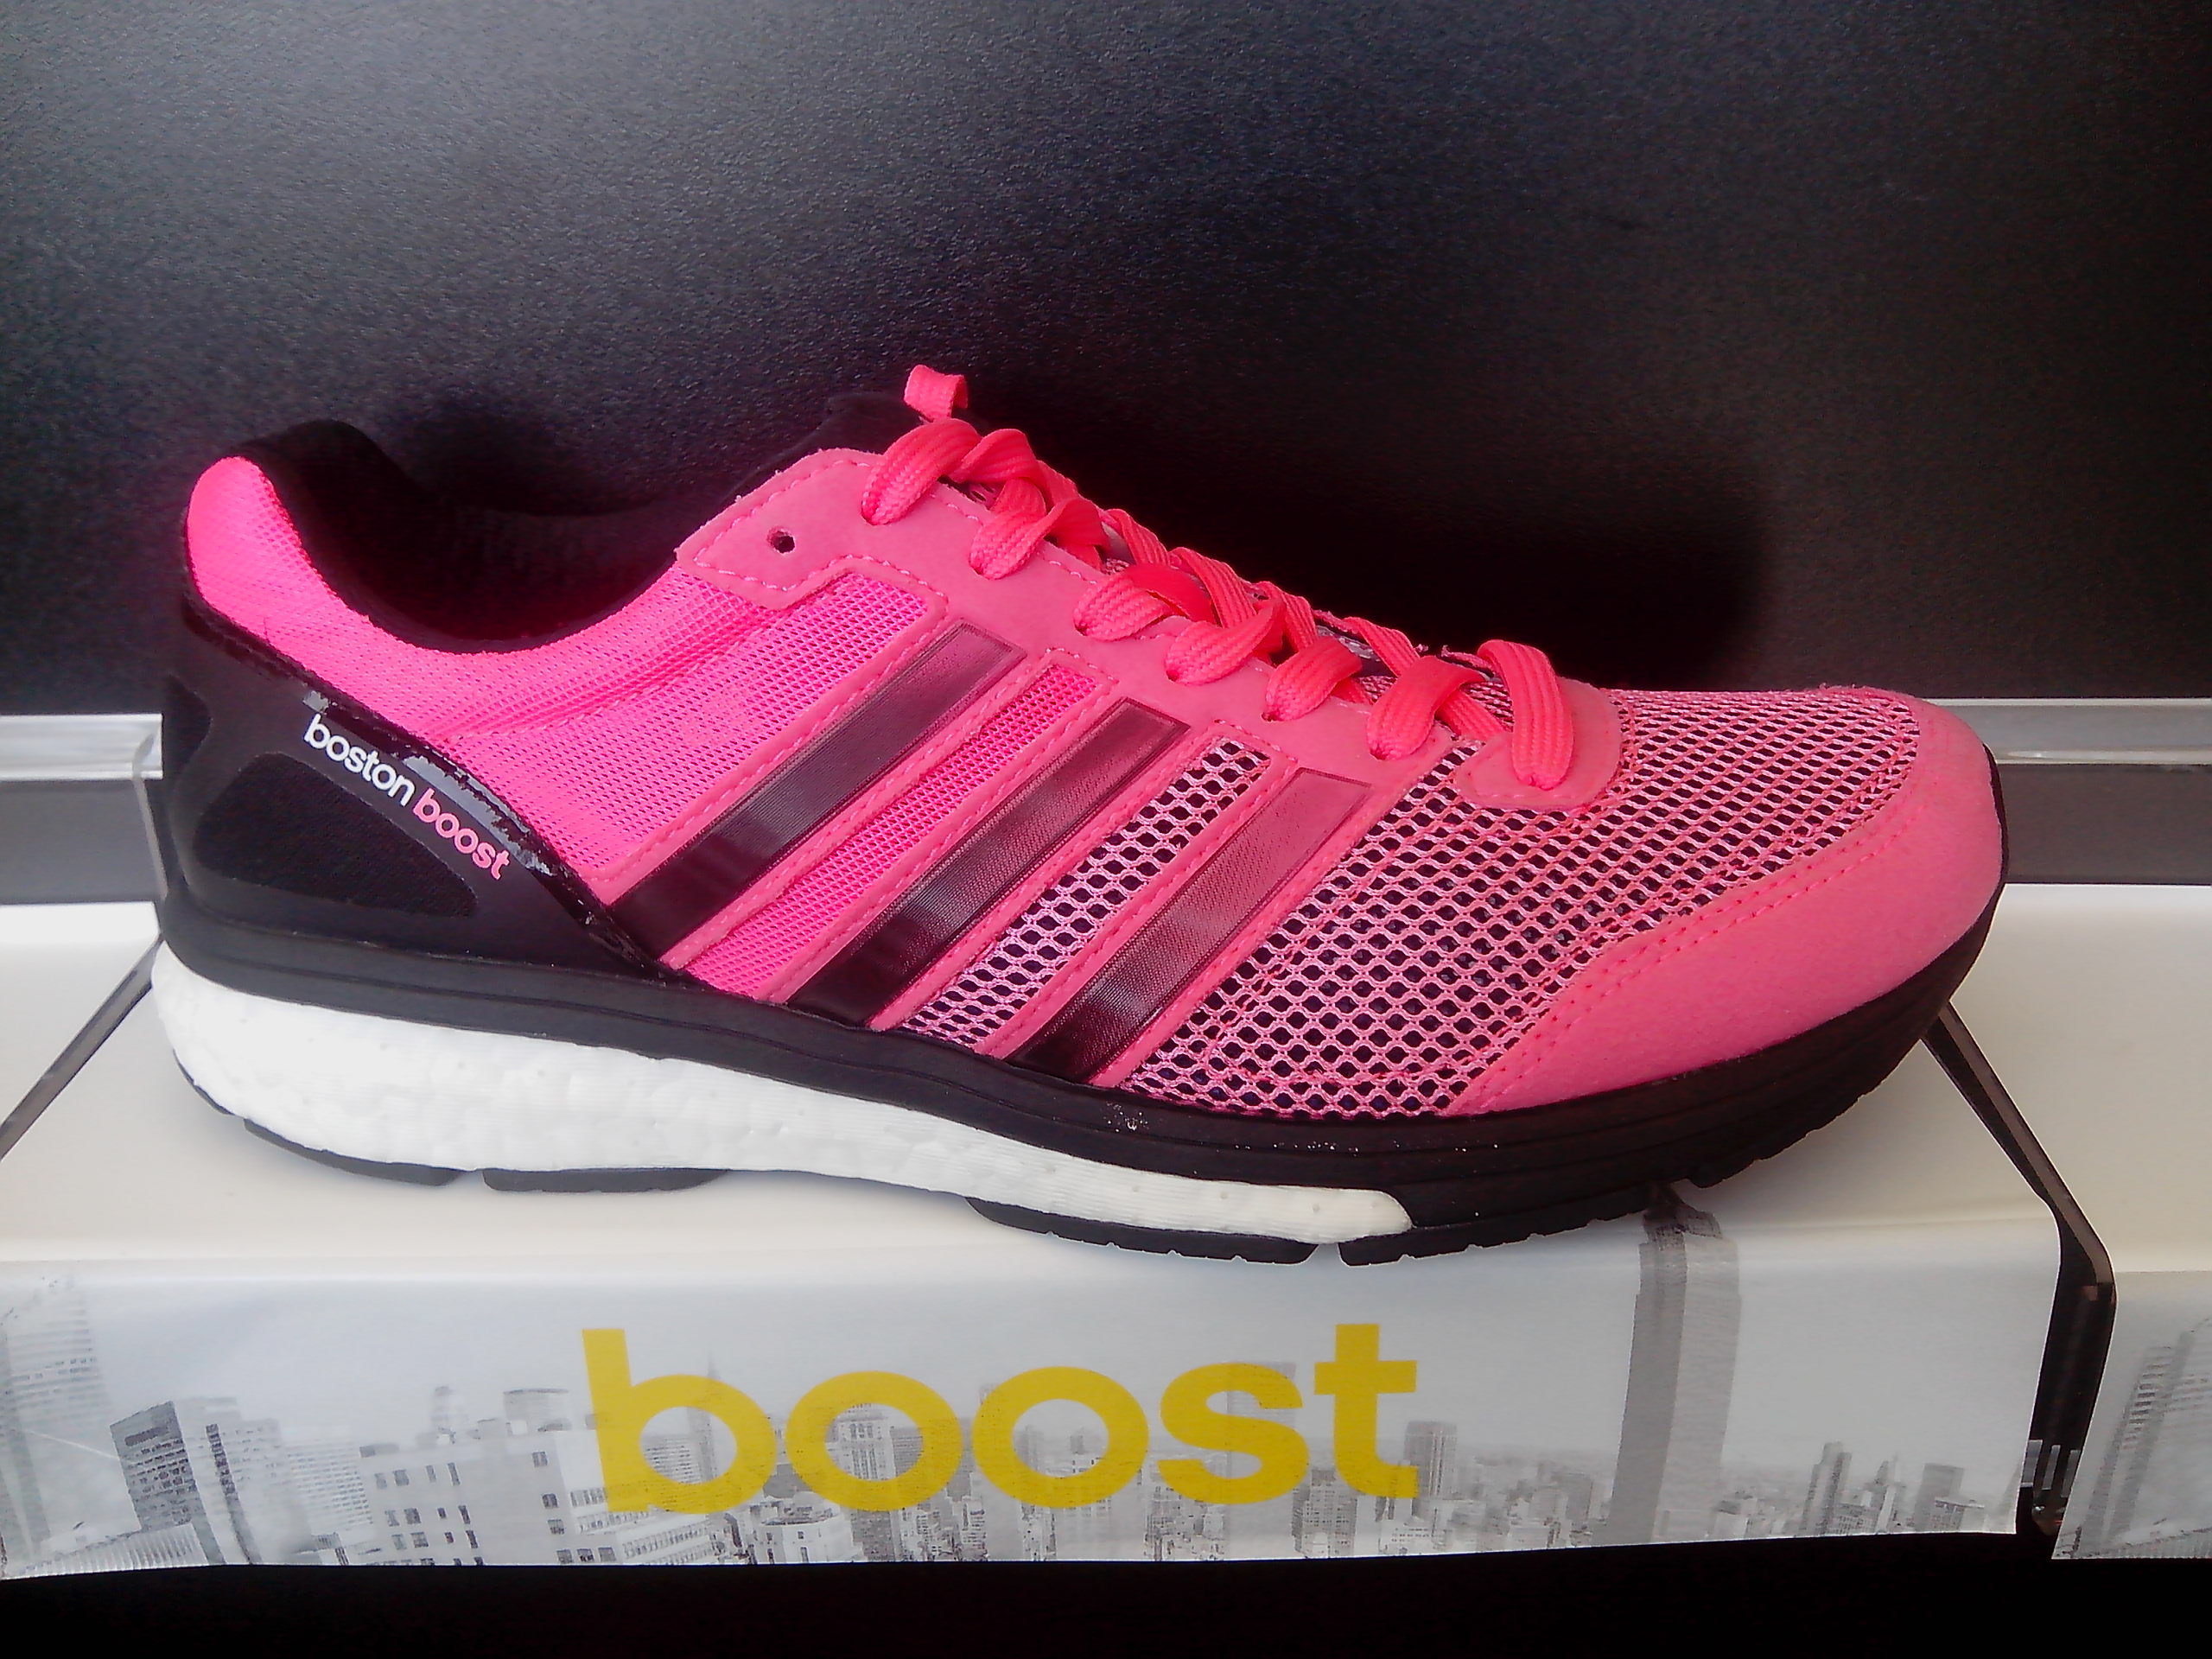 competitive price a0f6f 92743 adidas boston boost fw14 01